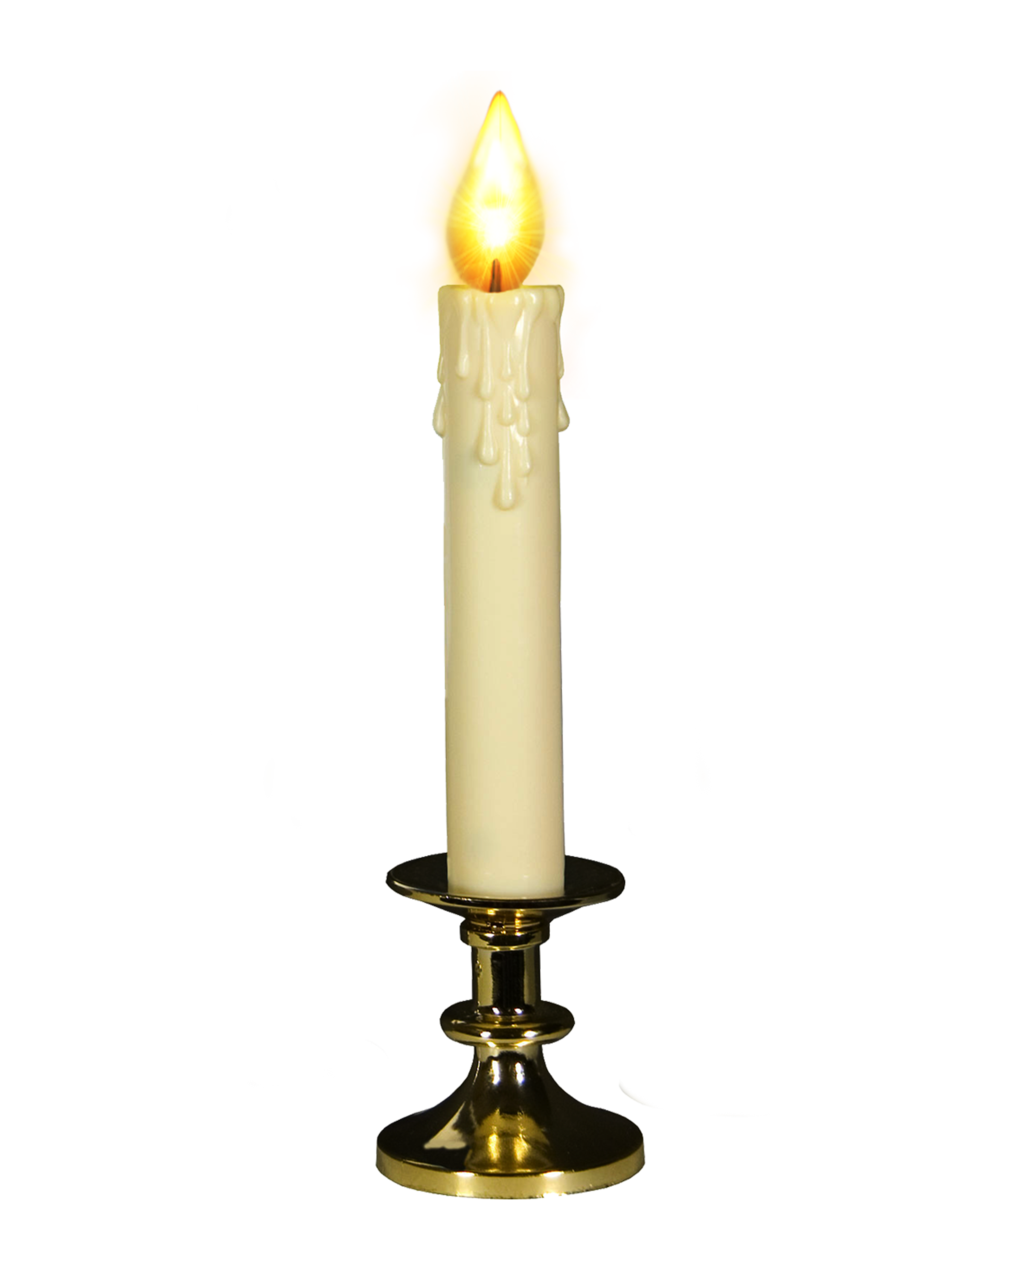 Church Candles Png Image PNG Image-Church Candles Png Image PNG Image-2